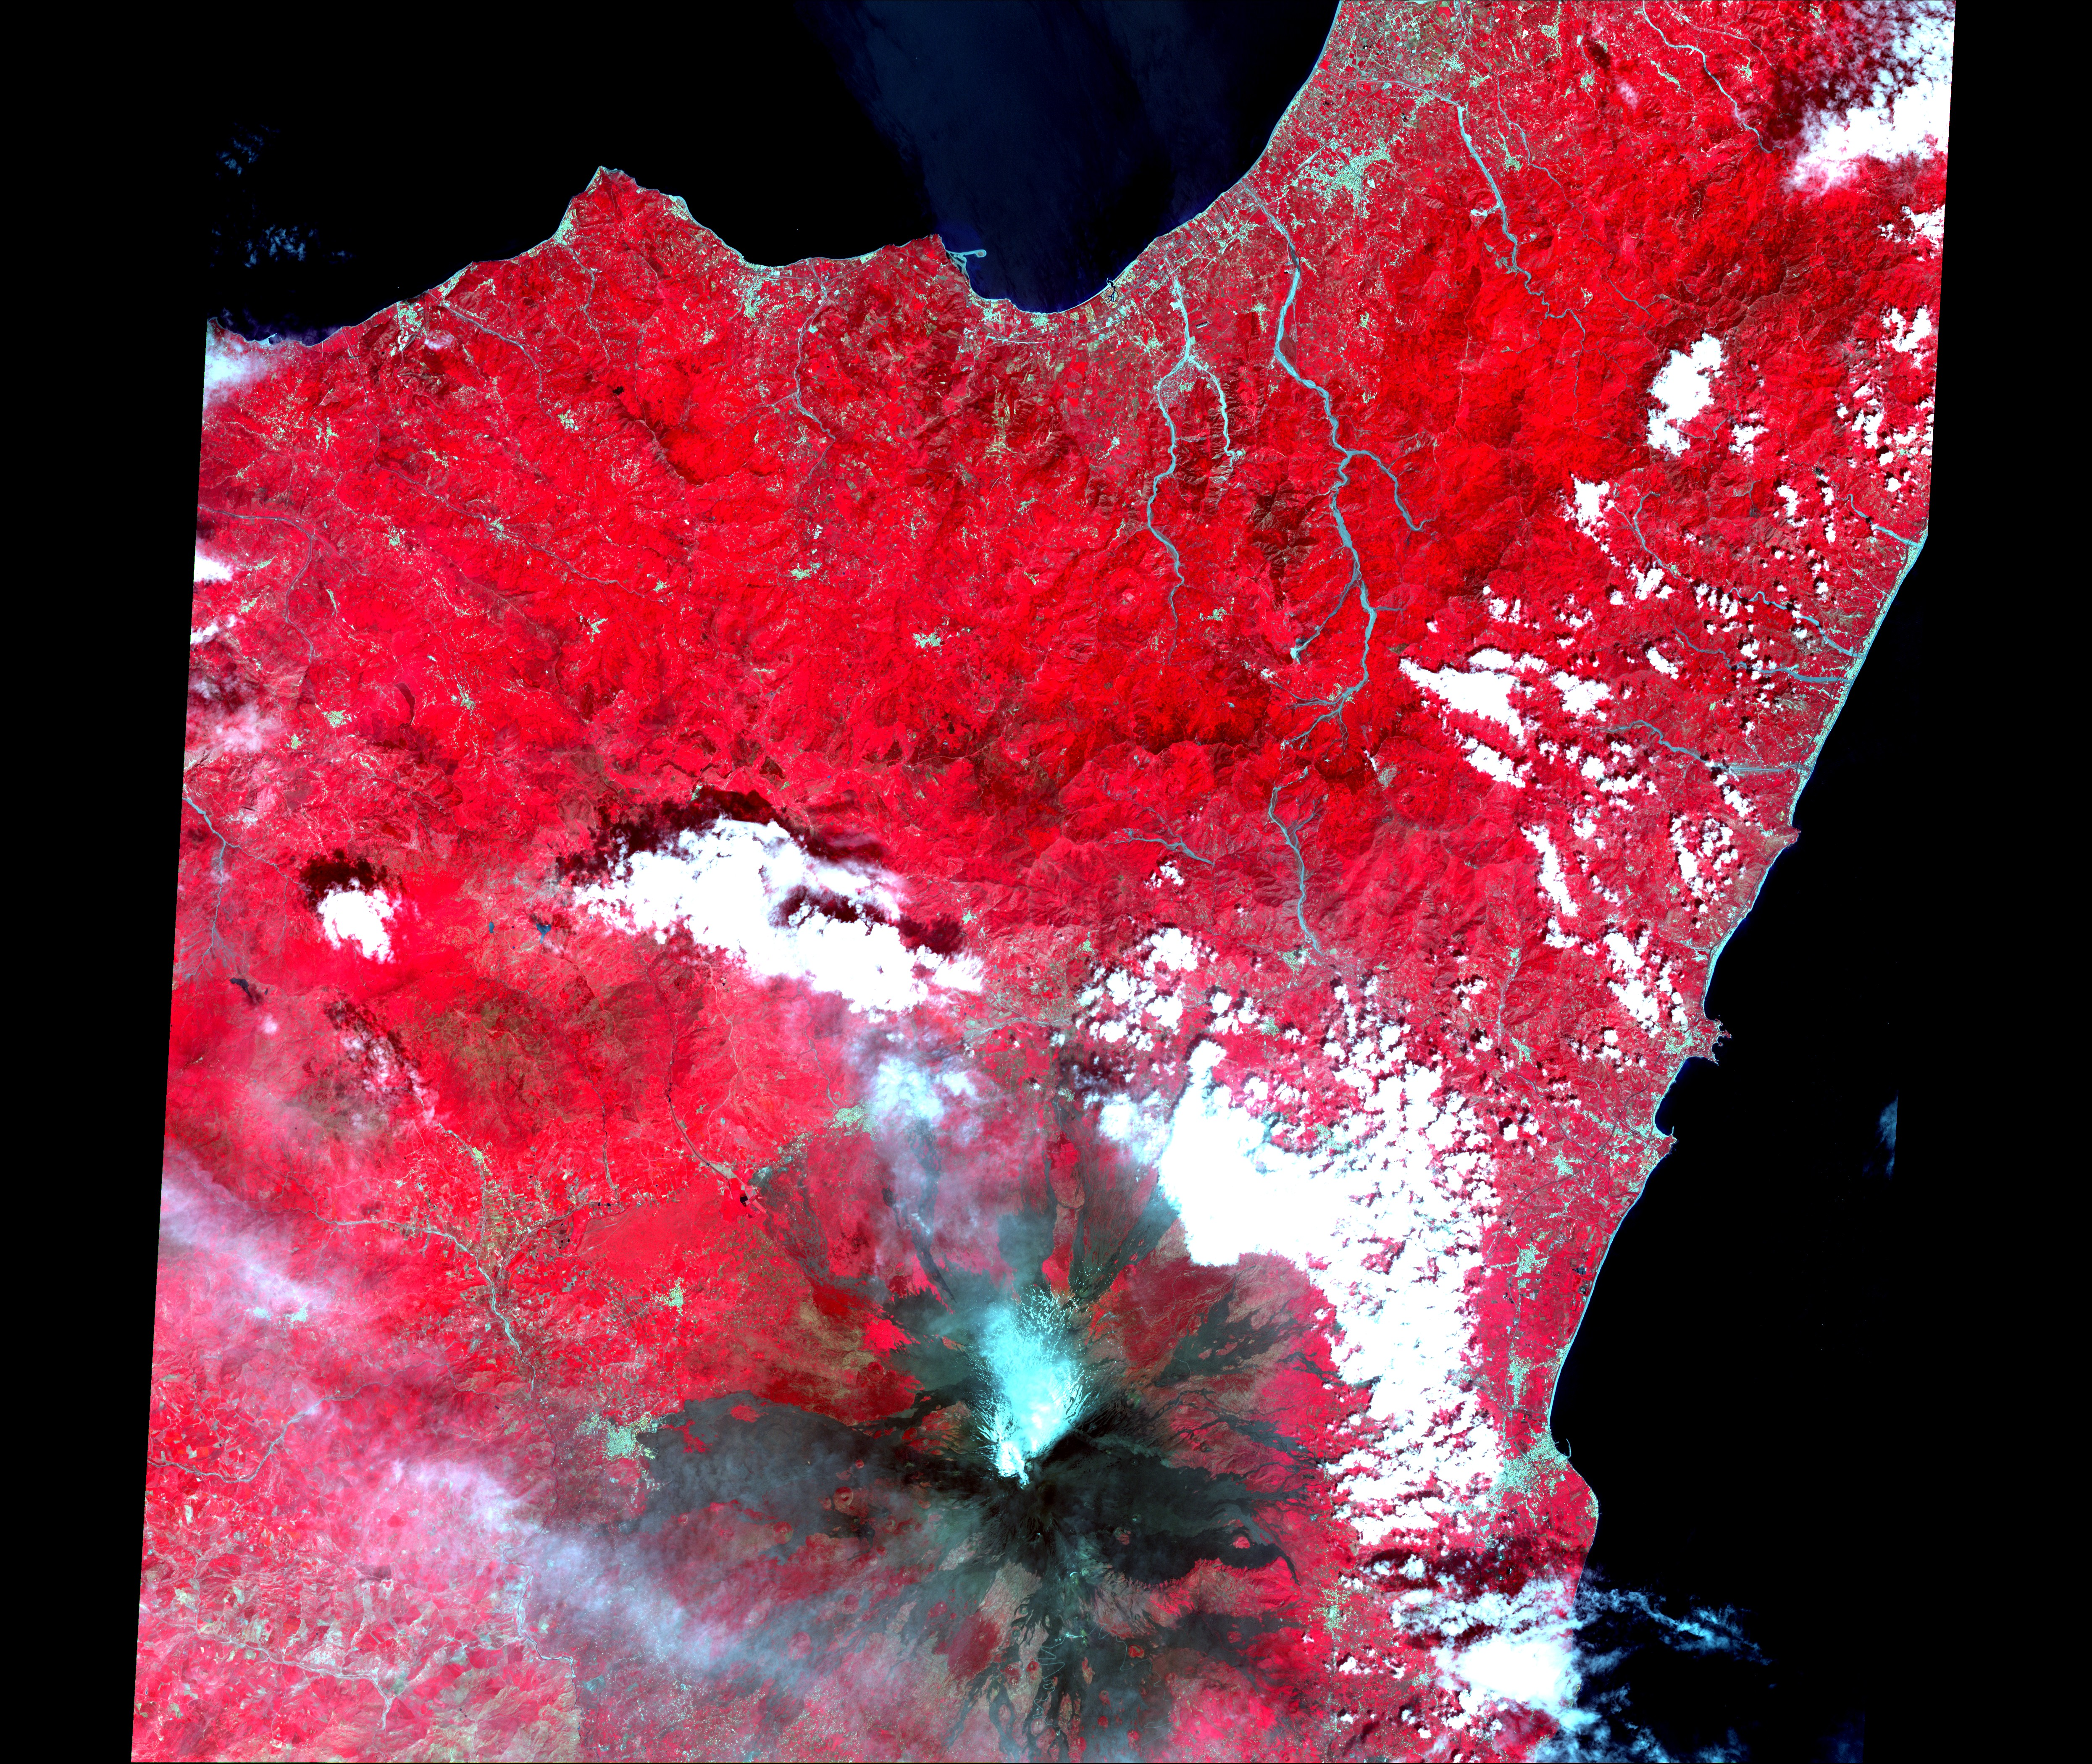 The Continuing Eruption of Mount Etna